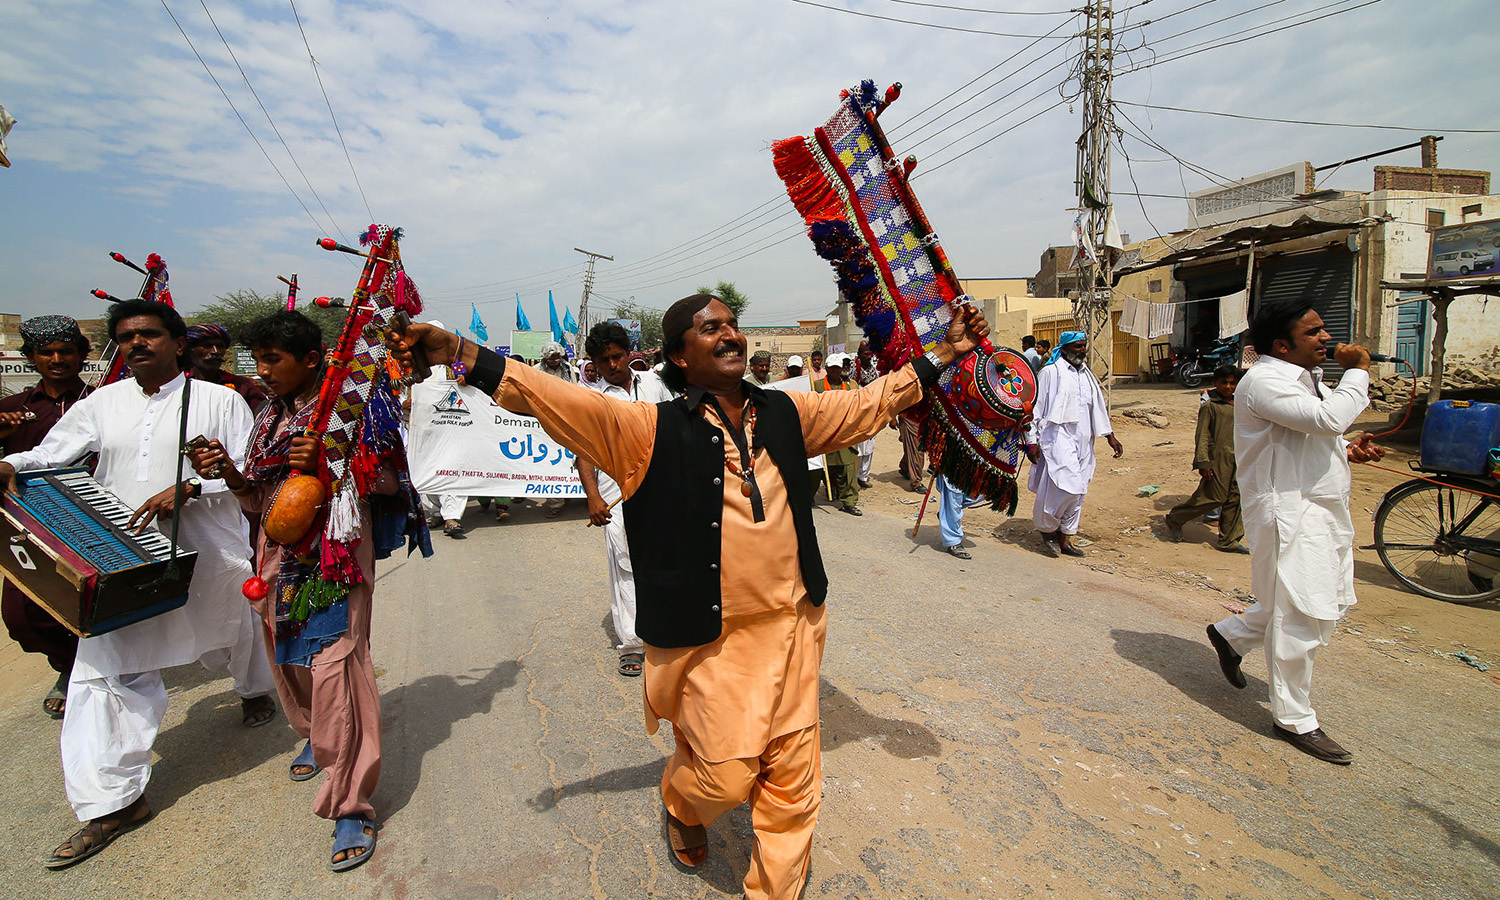 Maula Bux leads the caravan in song and music. The caravan has reached Sanghar City.